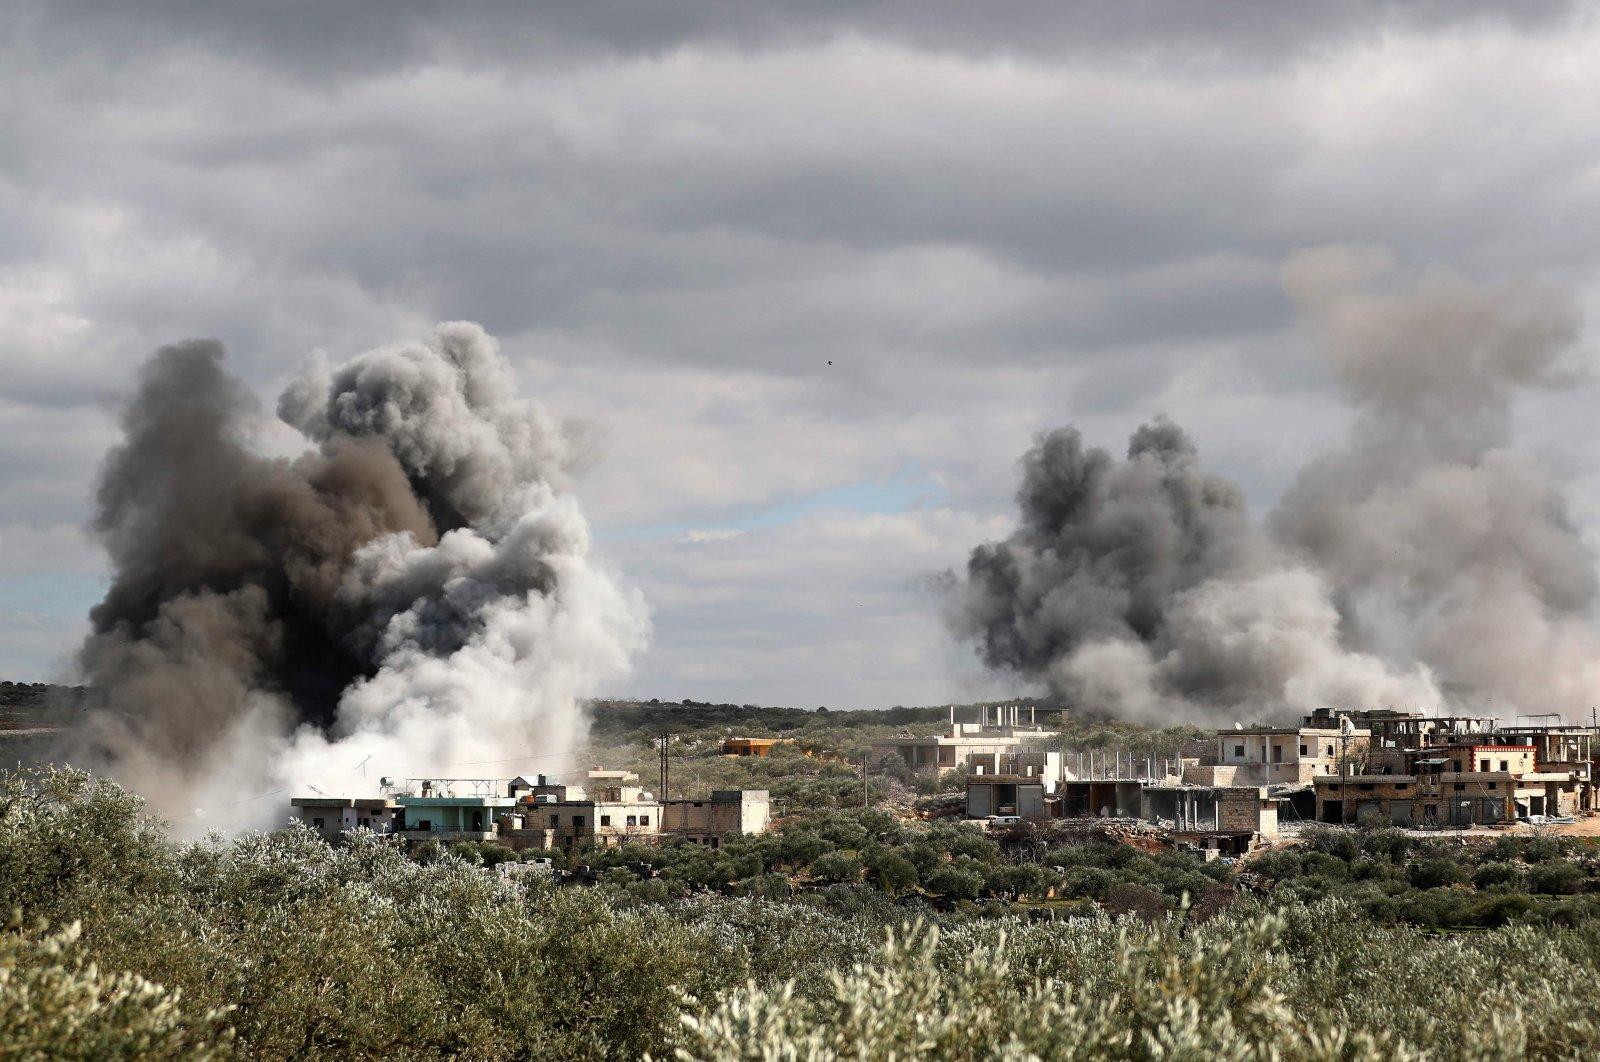 Smoke plumes rise after an aerial bombardment by Assad regime forces on the village of al-Bara in the southern part of the northwestern province of Idlib, March 2, 2020. (AFP Photo)